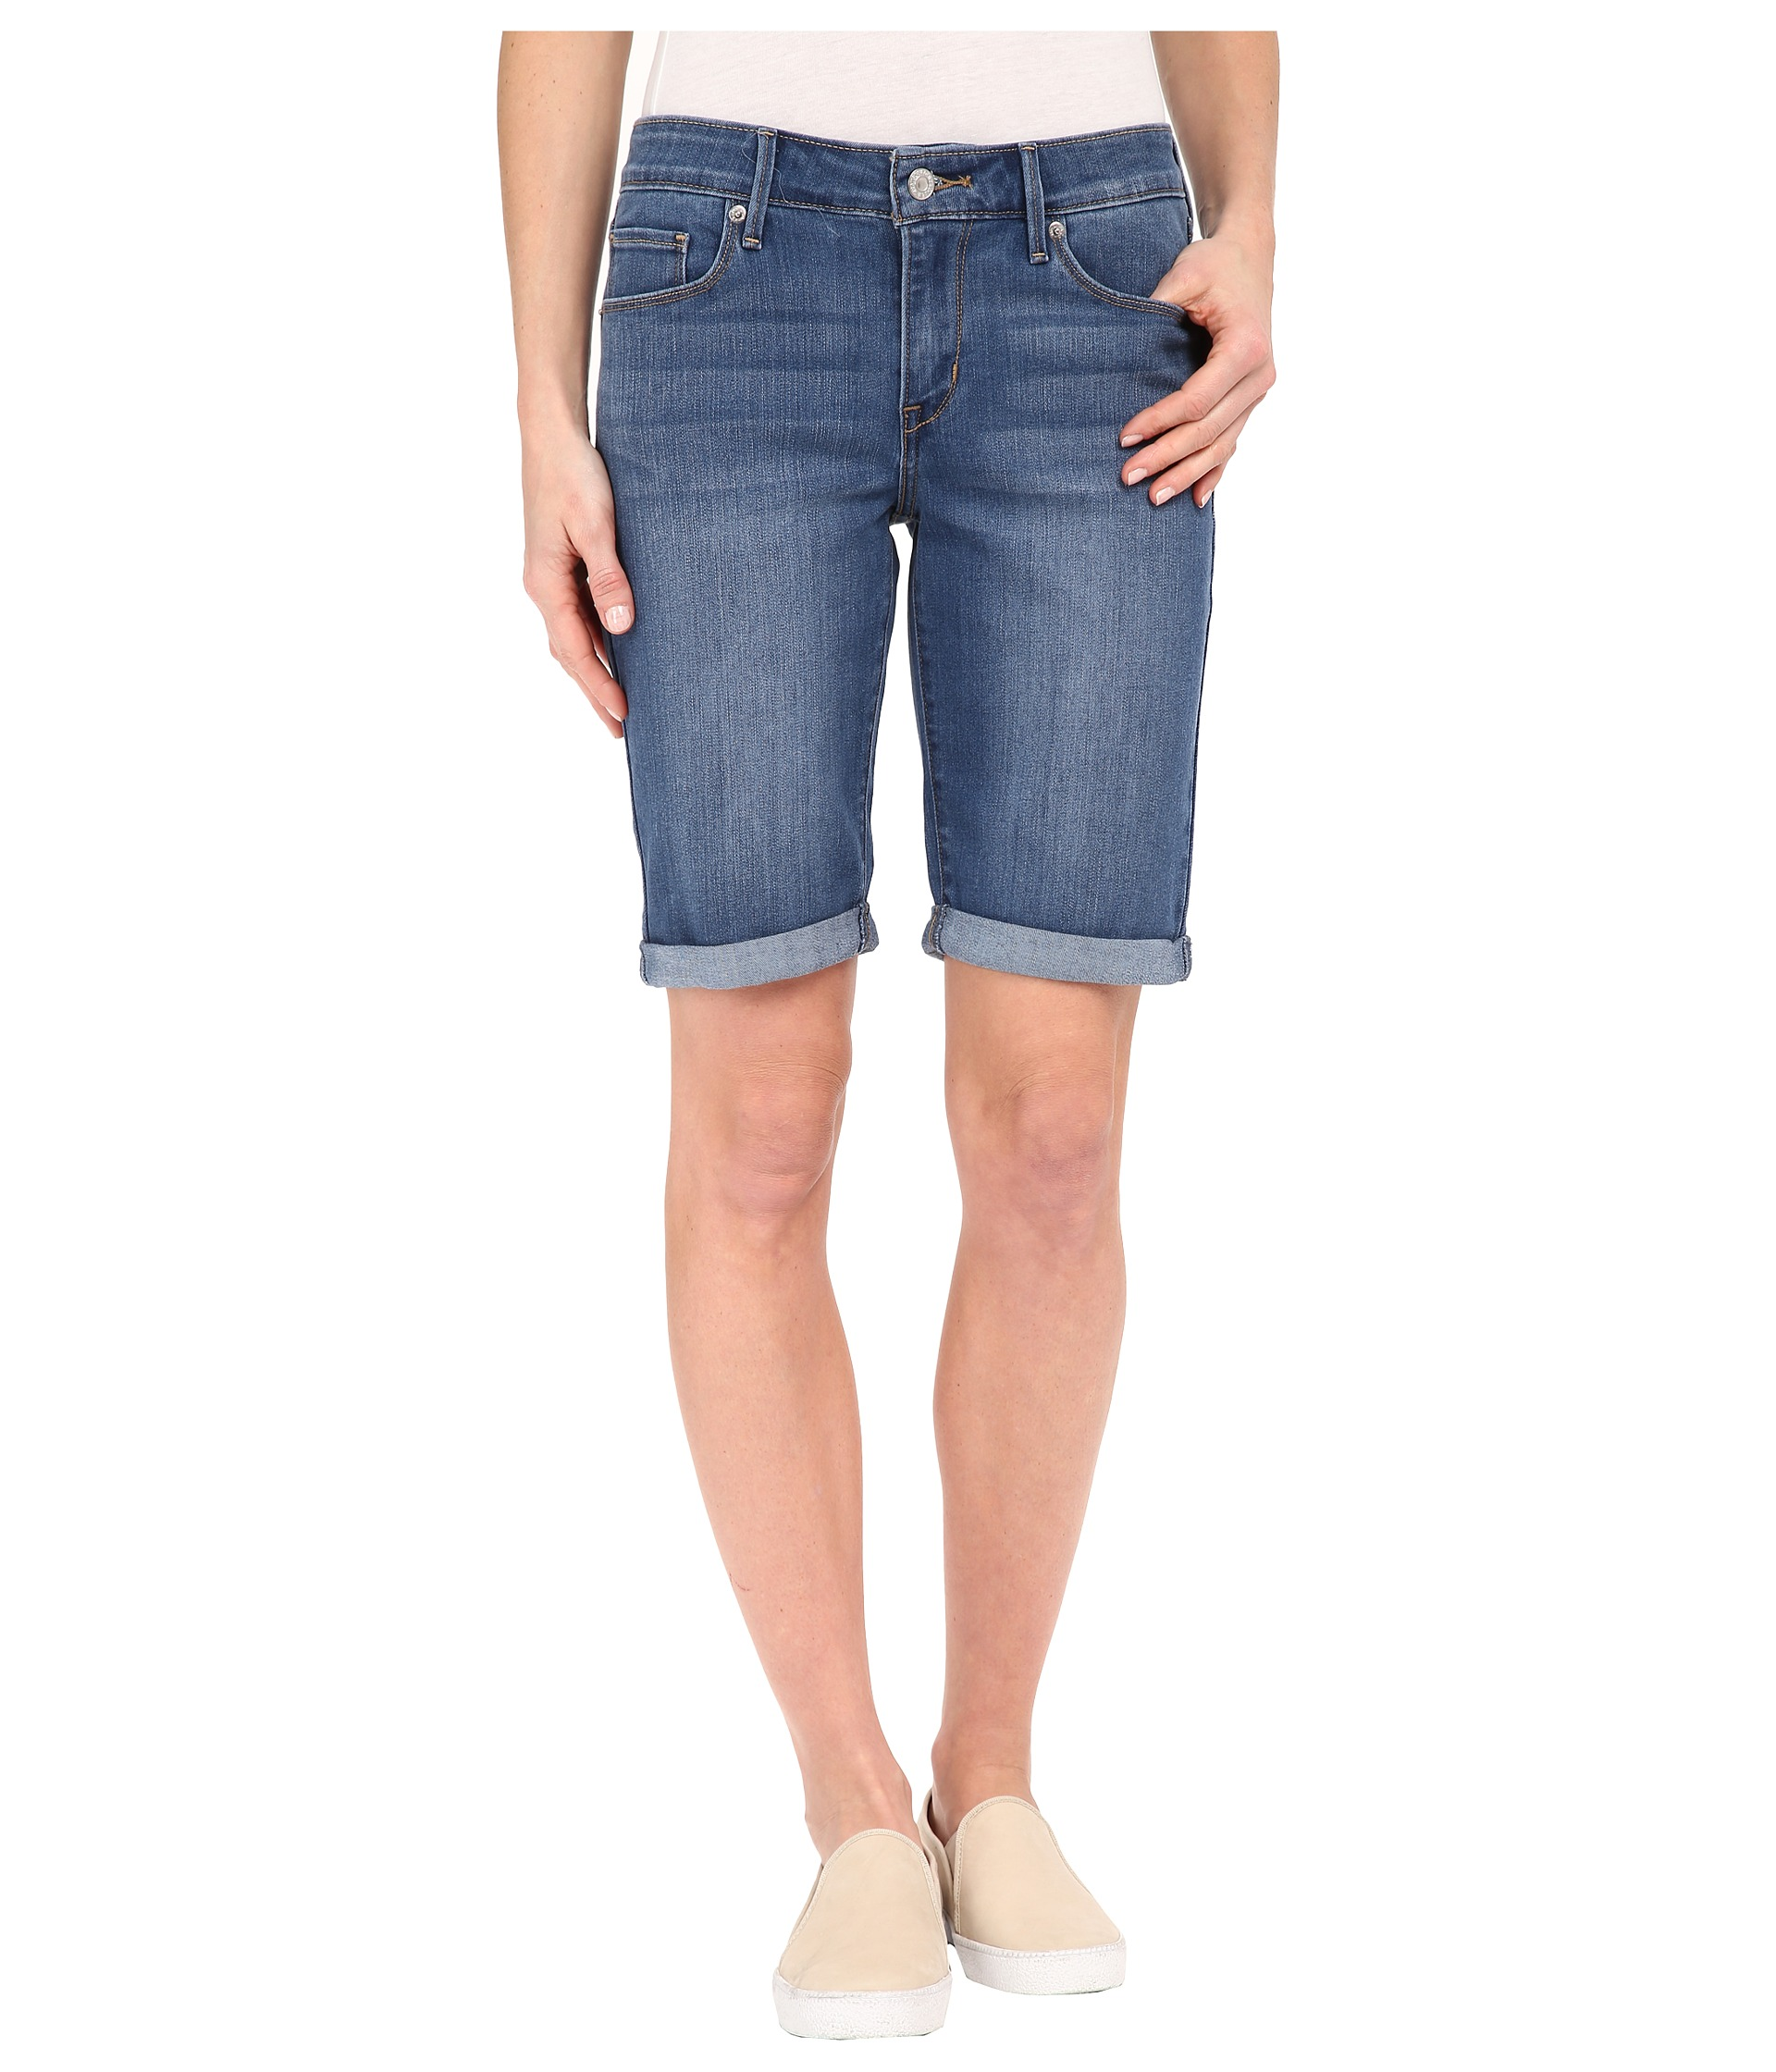 Find great deals on eBay for womens bermuda shorts. Shop with confidence.